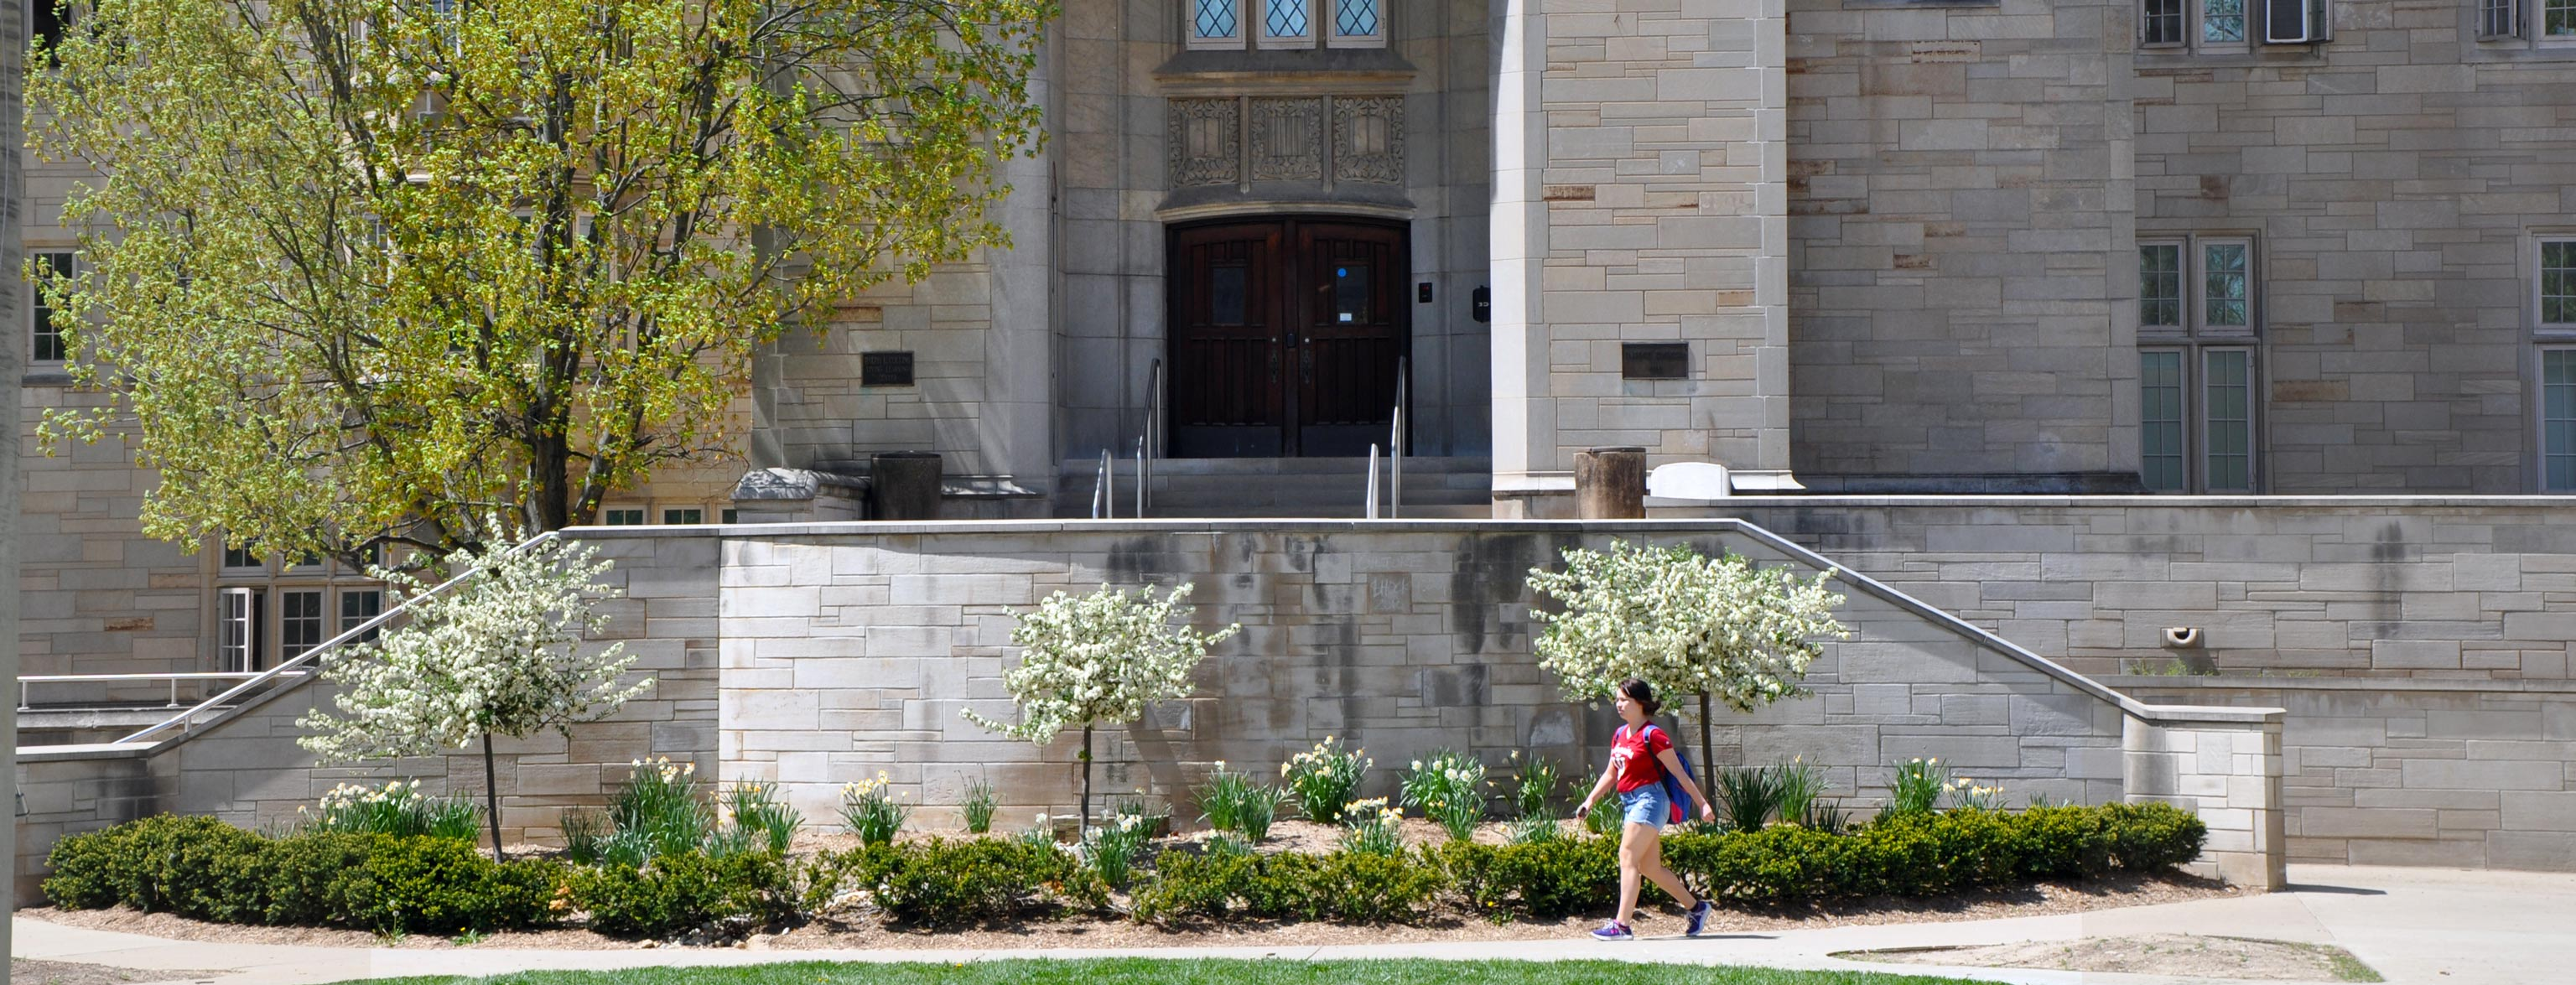 A student walking by the steps to the main entrance of the Collins Center